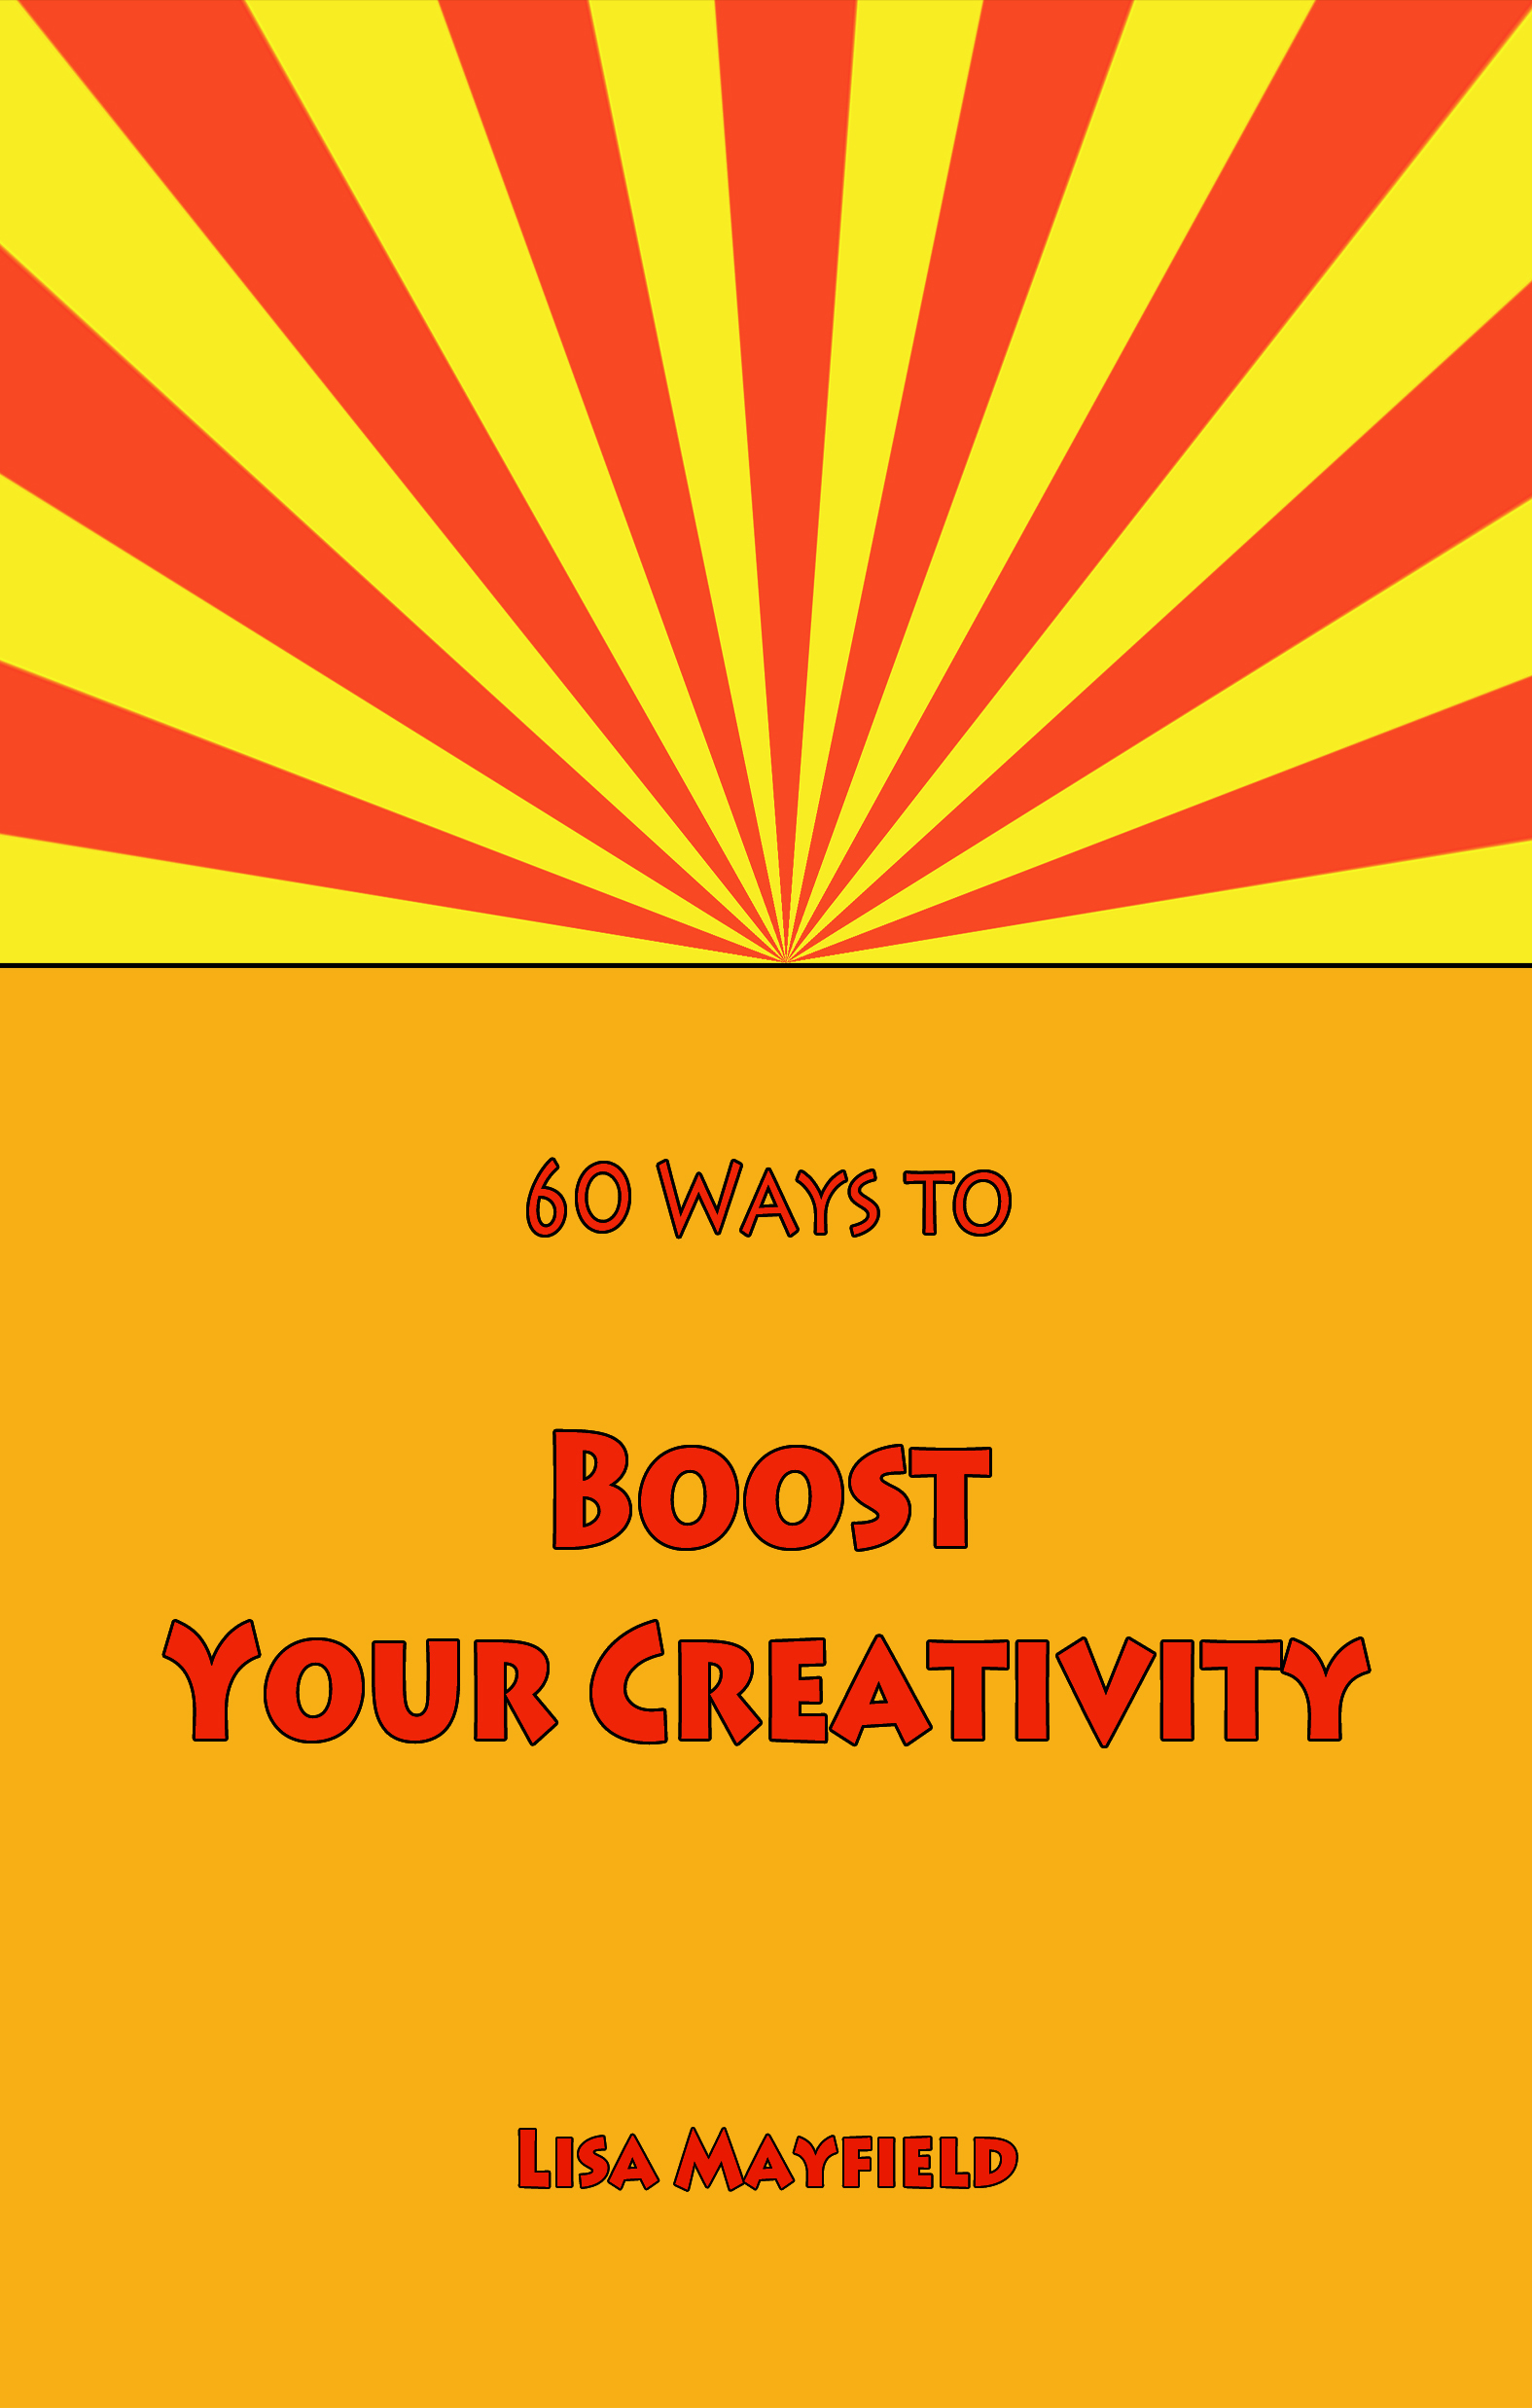 60 Ways to Boost Your Creativity